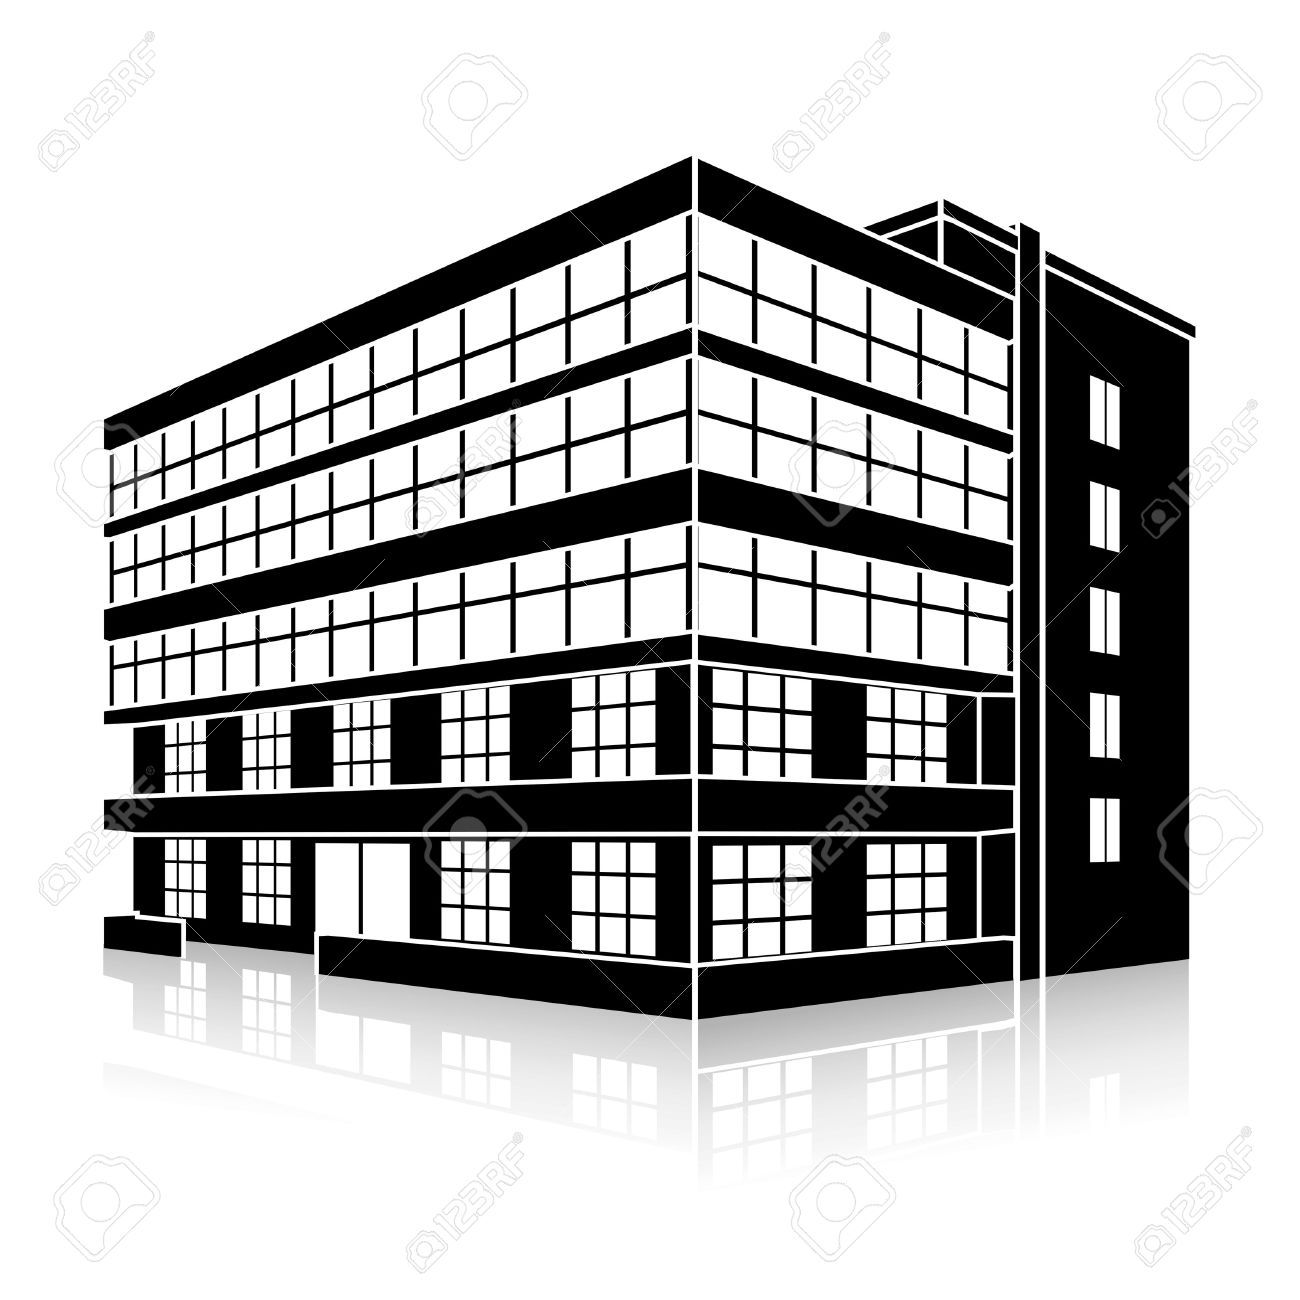 Office building clipart black and white 5 » Clipart Portal.